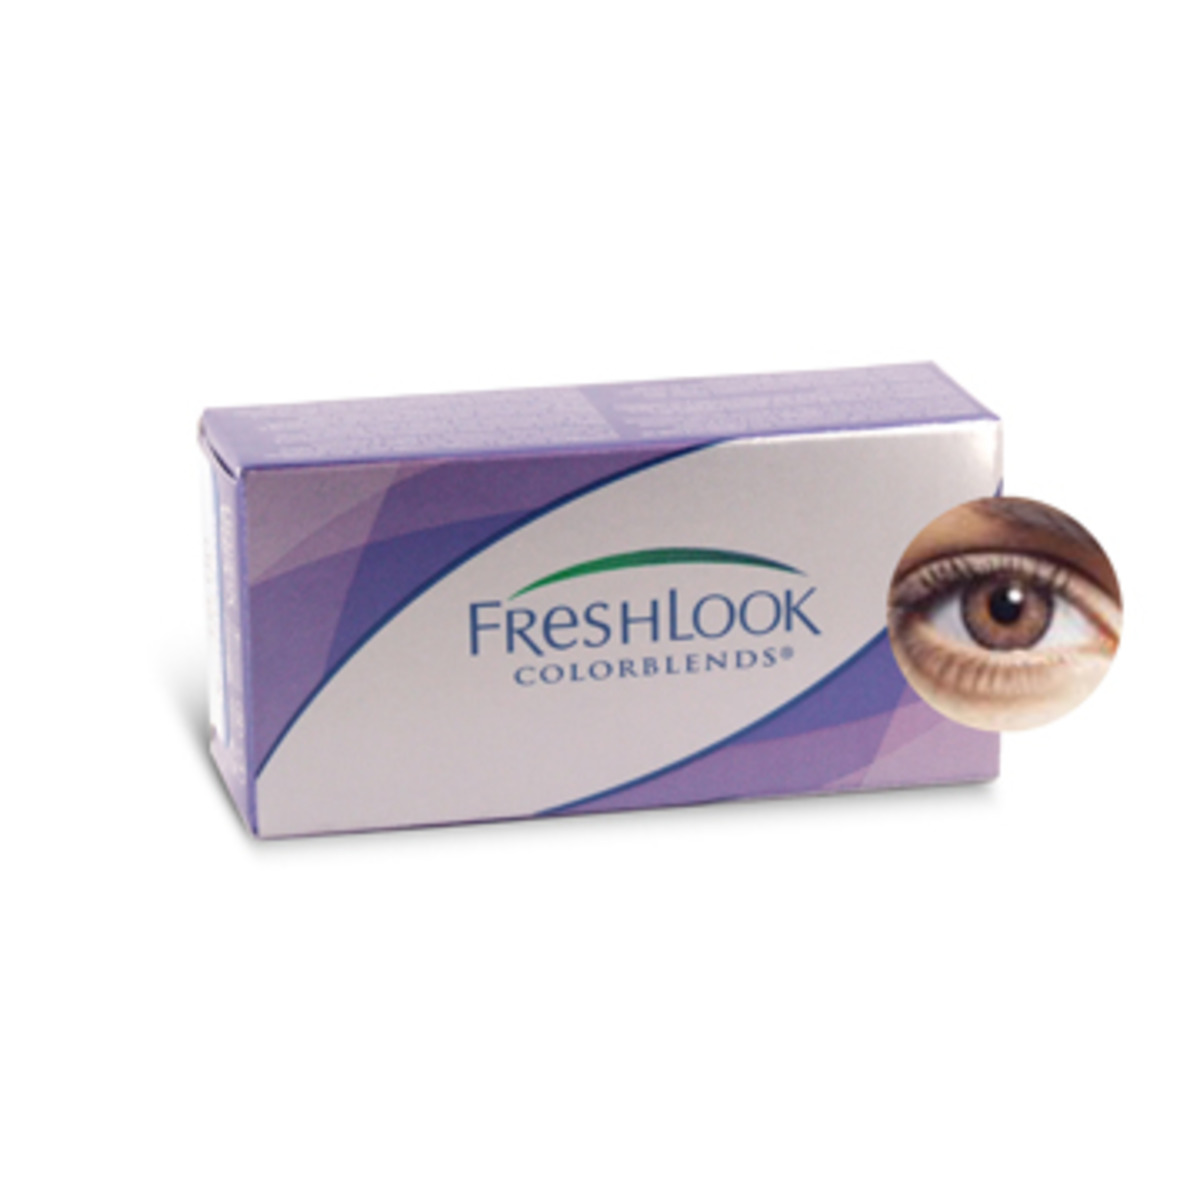 Freshlook Colorblends Brown (Canelle)